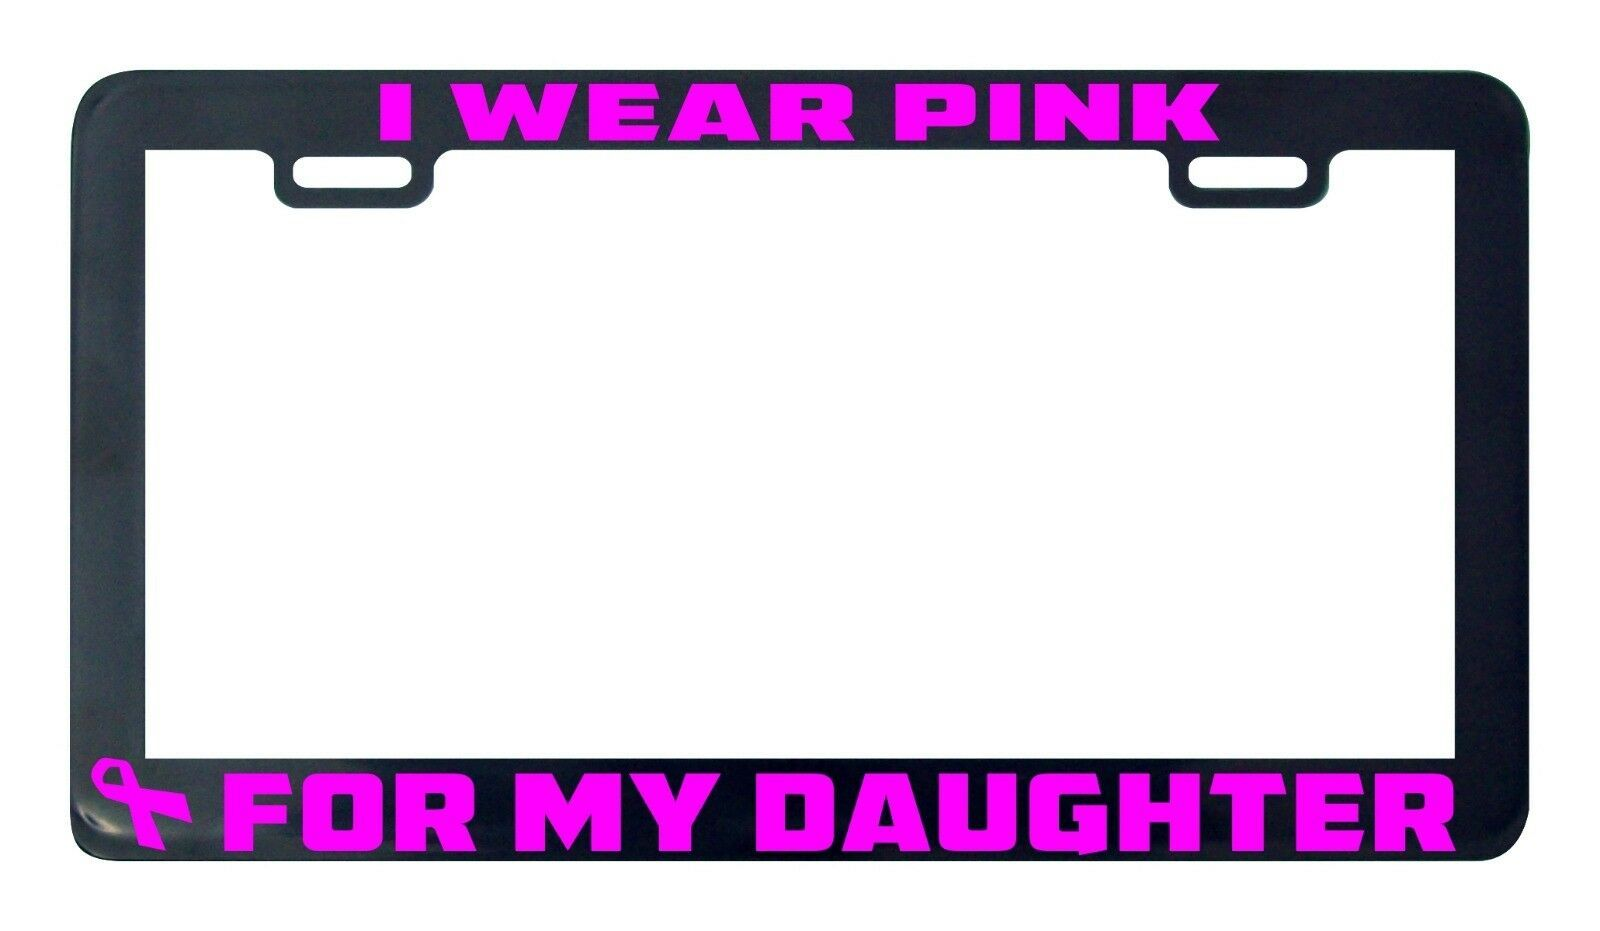 Primary image for I wear pink for my Daughter breast cancer awareness license plate frame